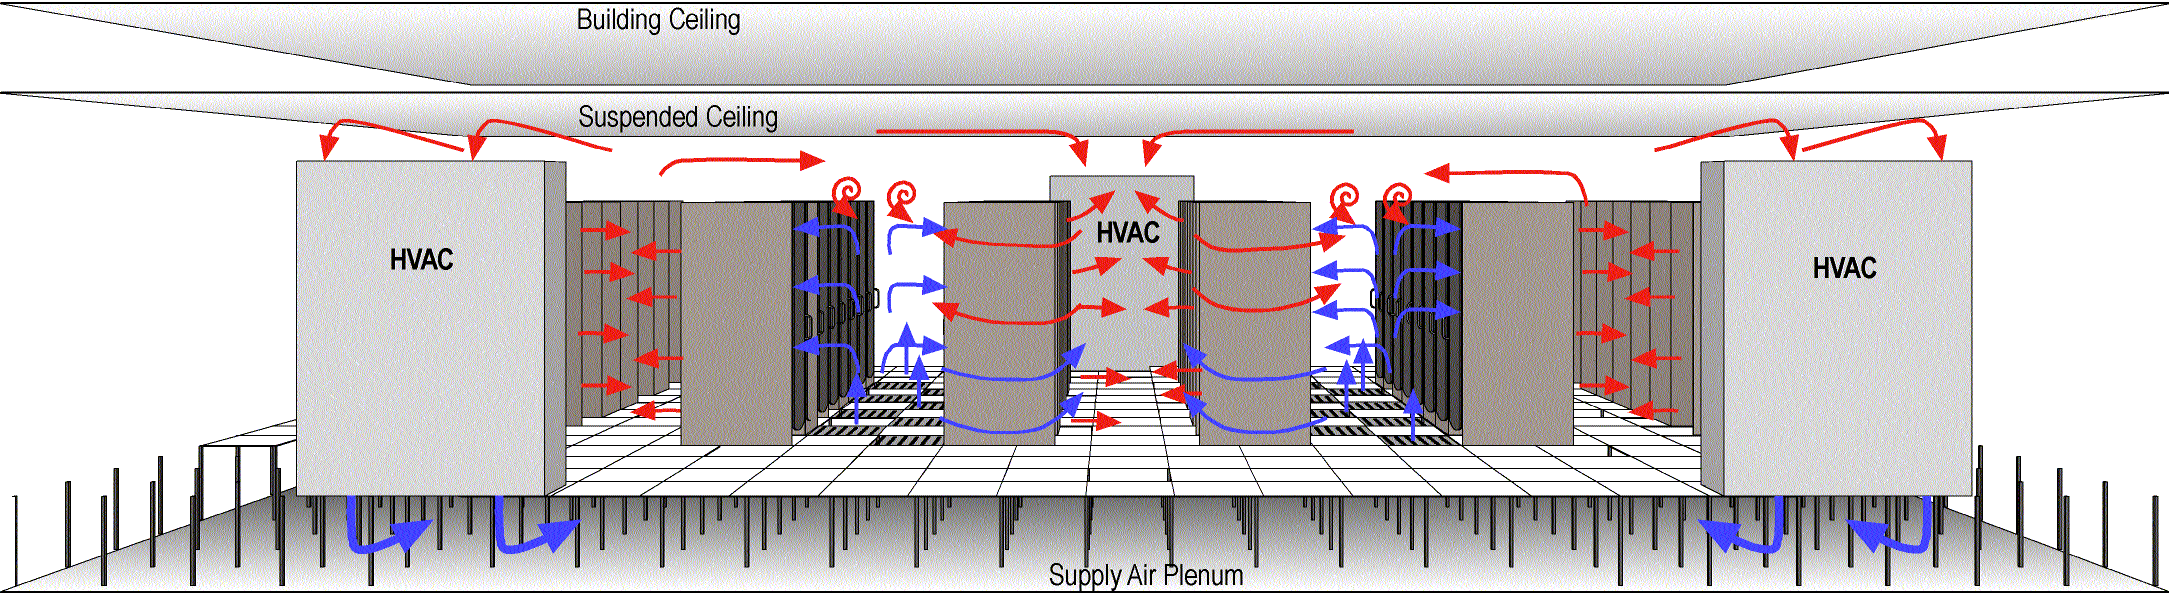 3. Cooling 1/5 Best practices Airflow design and management Equipment should share same the airflow direction Design raised floor or suspended ceiling height Separate from external environment